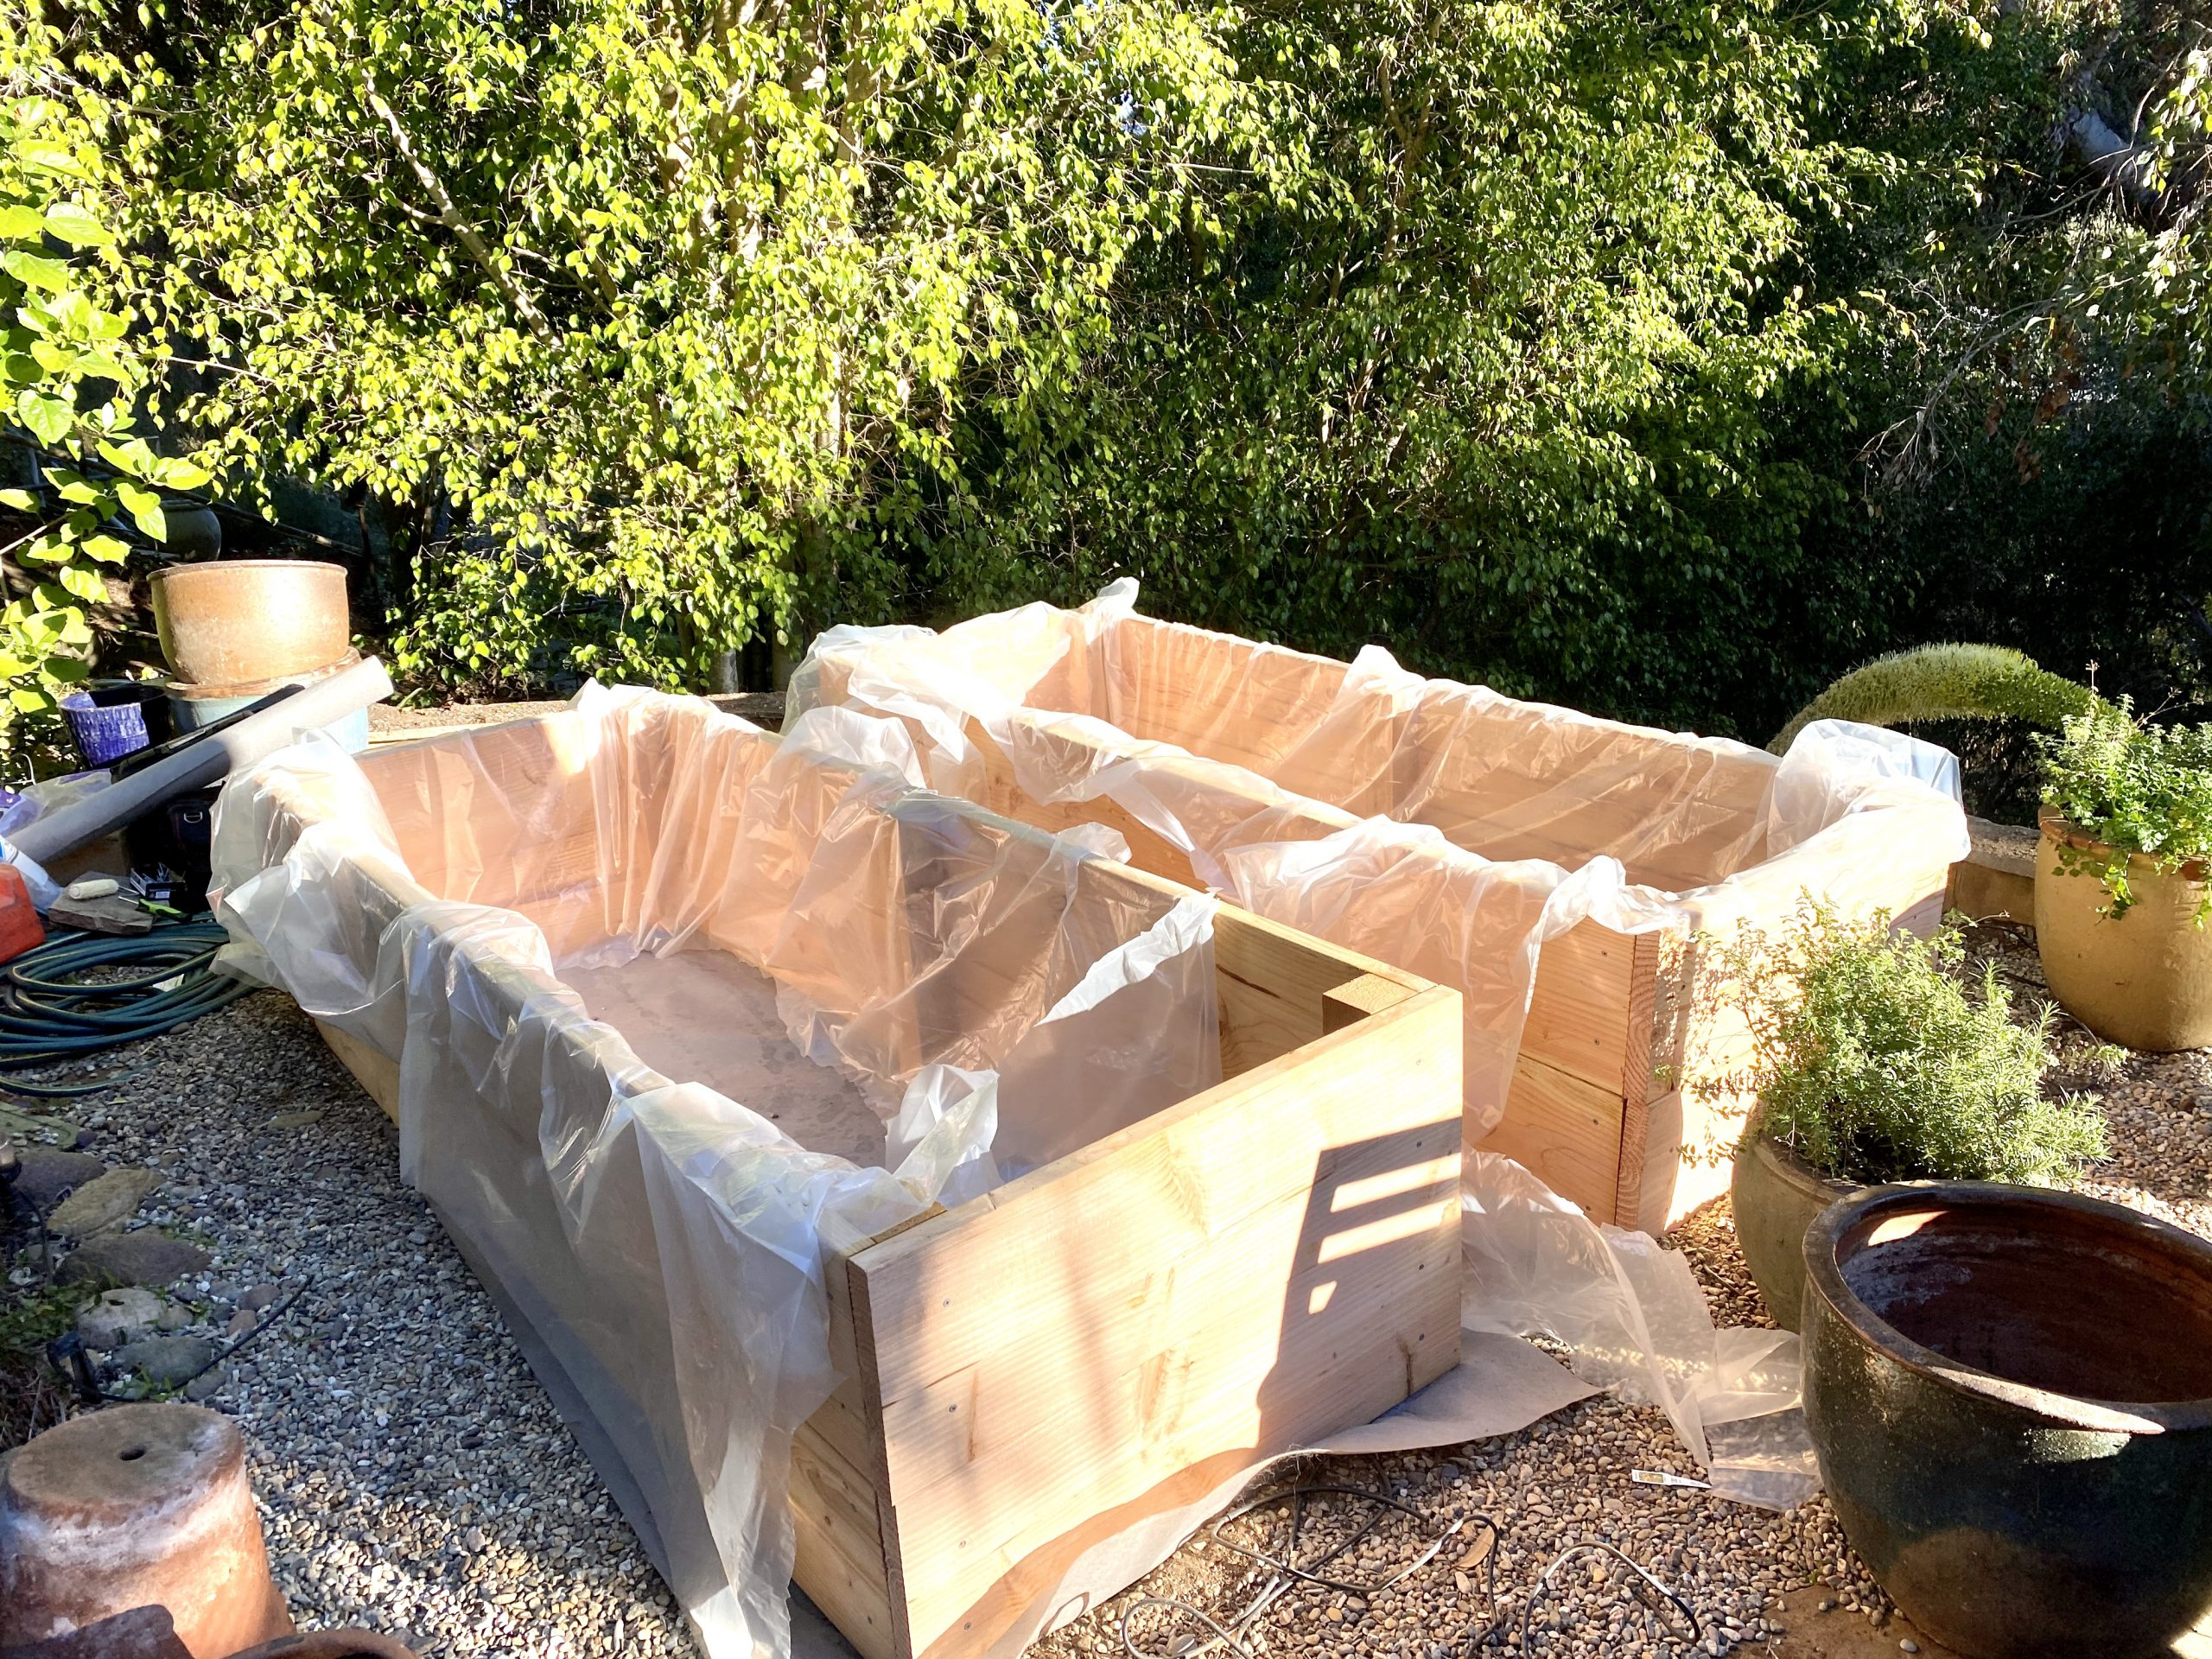 vegetable garden beds under construction with plastic sheeting liners